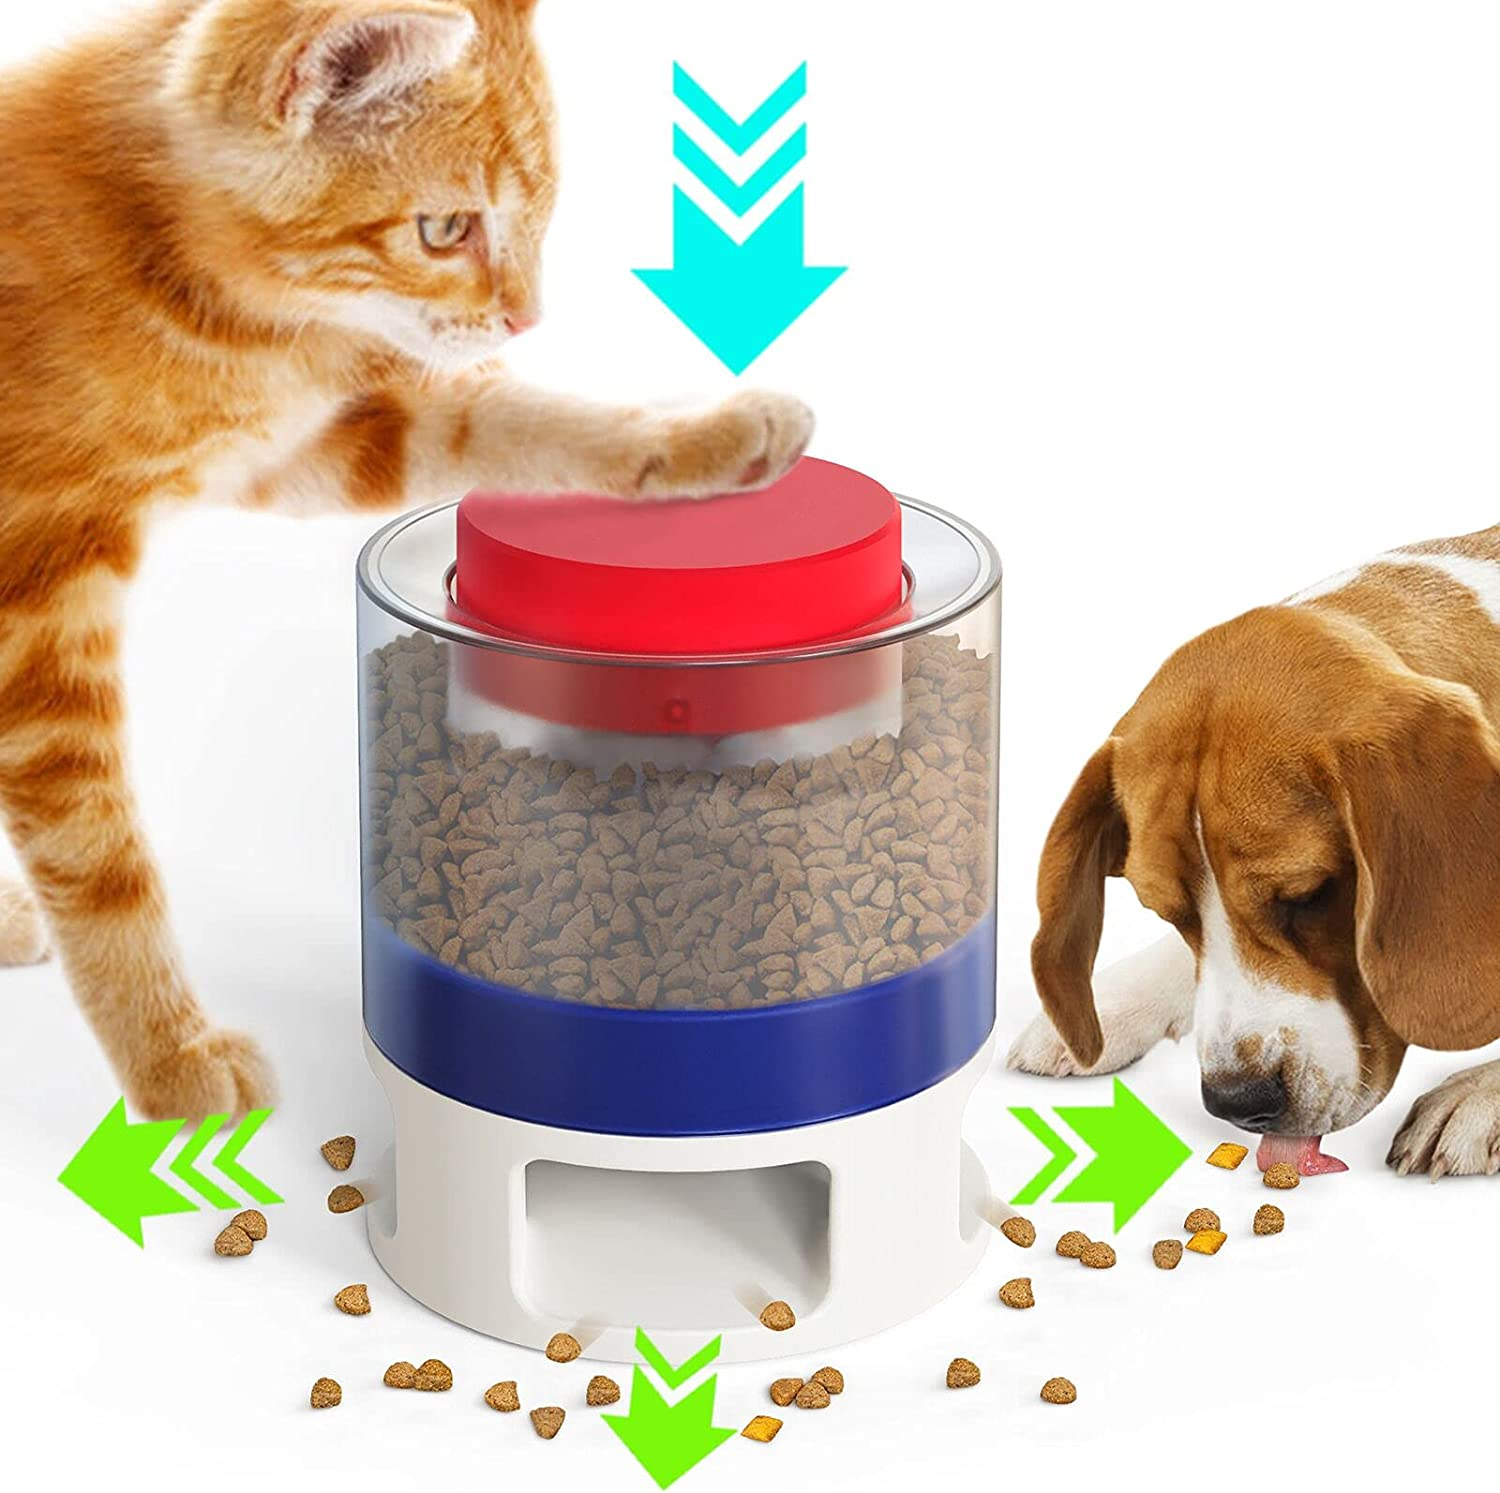 Automatic Dog Feeder Courier shipping free shipping - Press cheap Feeders Interactive Slow Toy Food